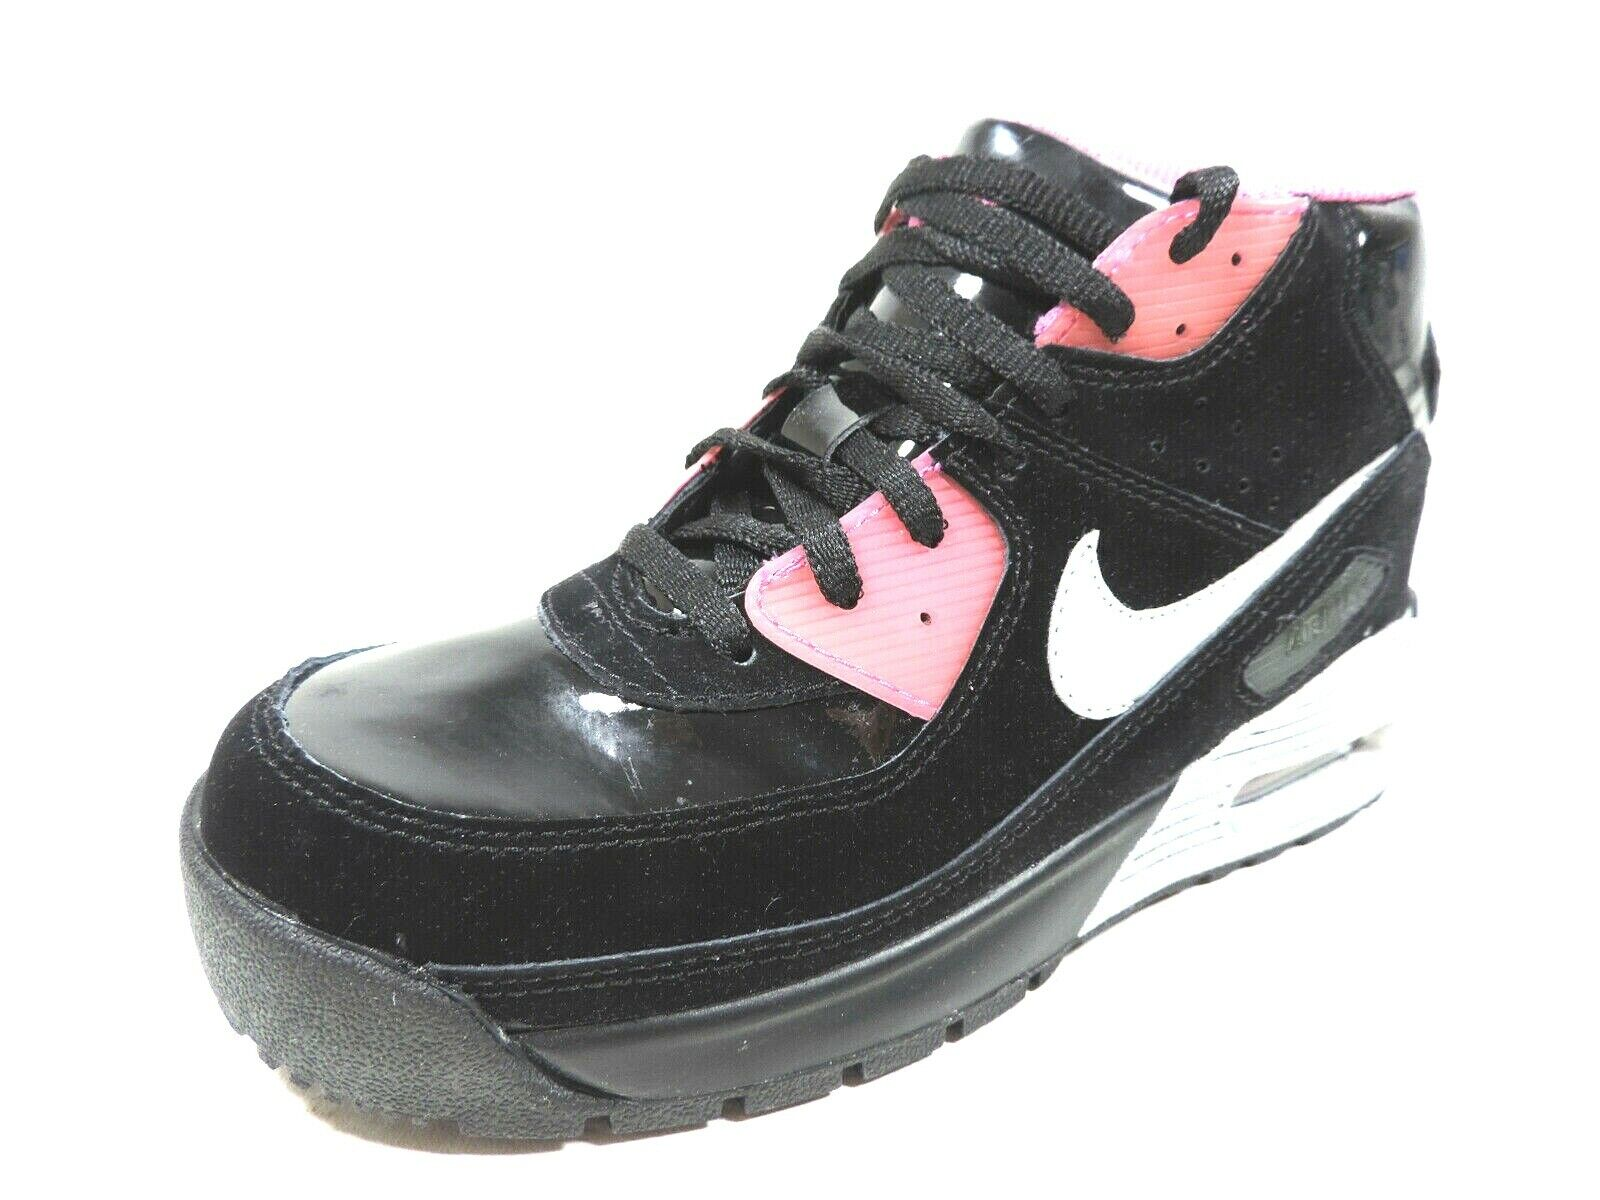 Details about Nike Air Max 90 Boot GS 317298 001 Girls Shoes Sneakers Black Leather Vintage